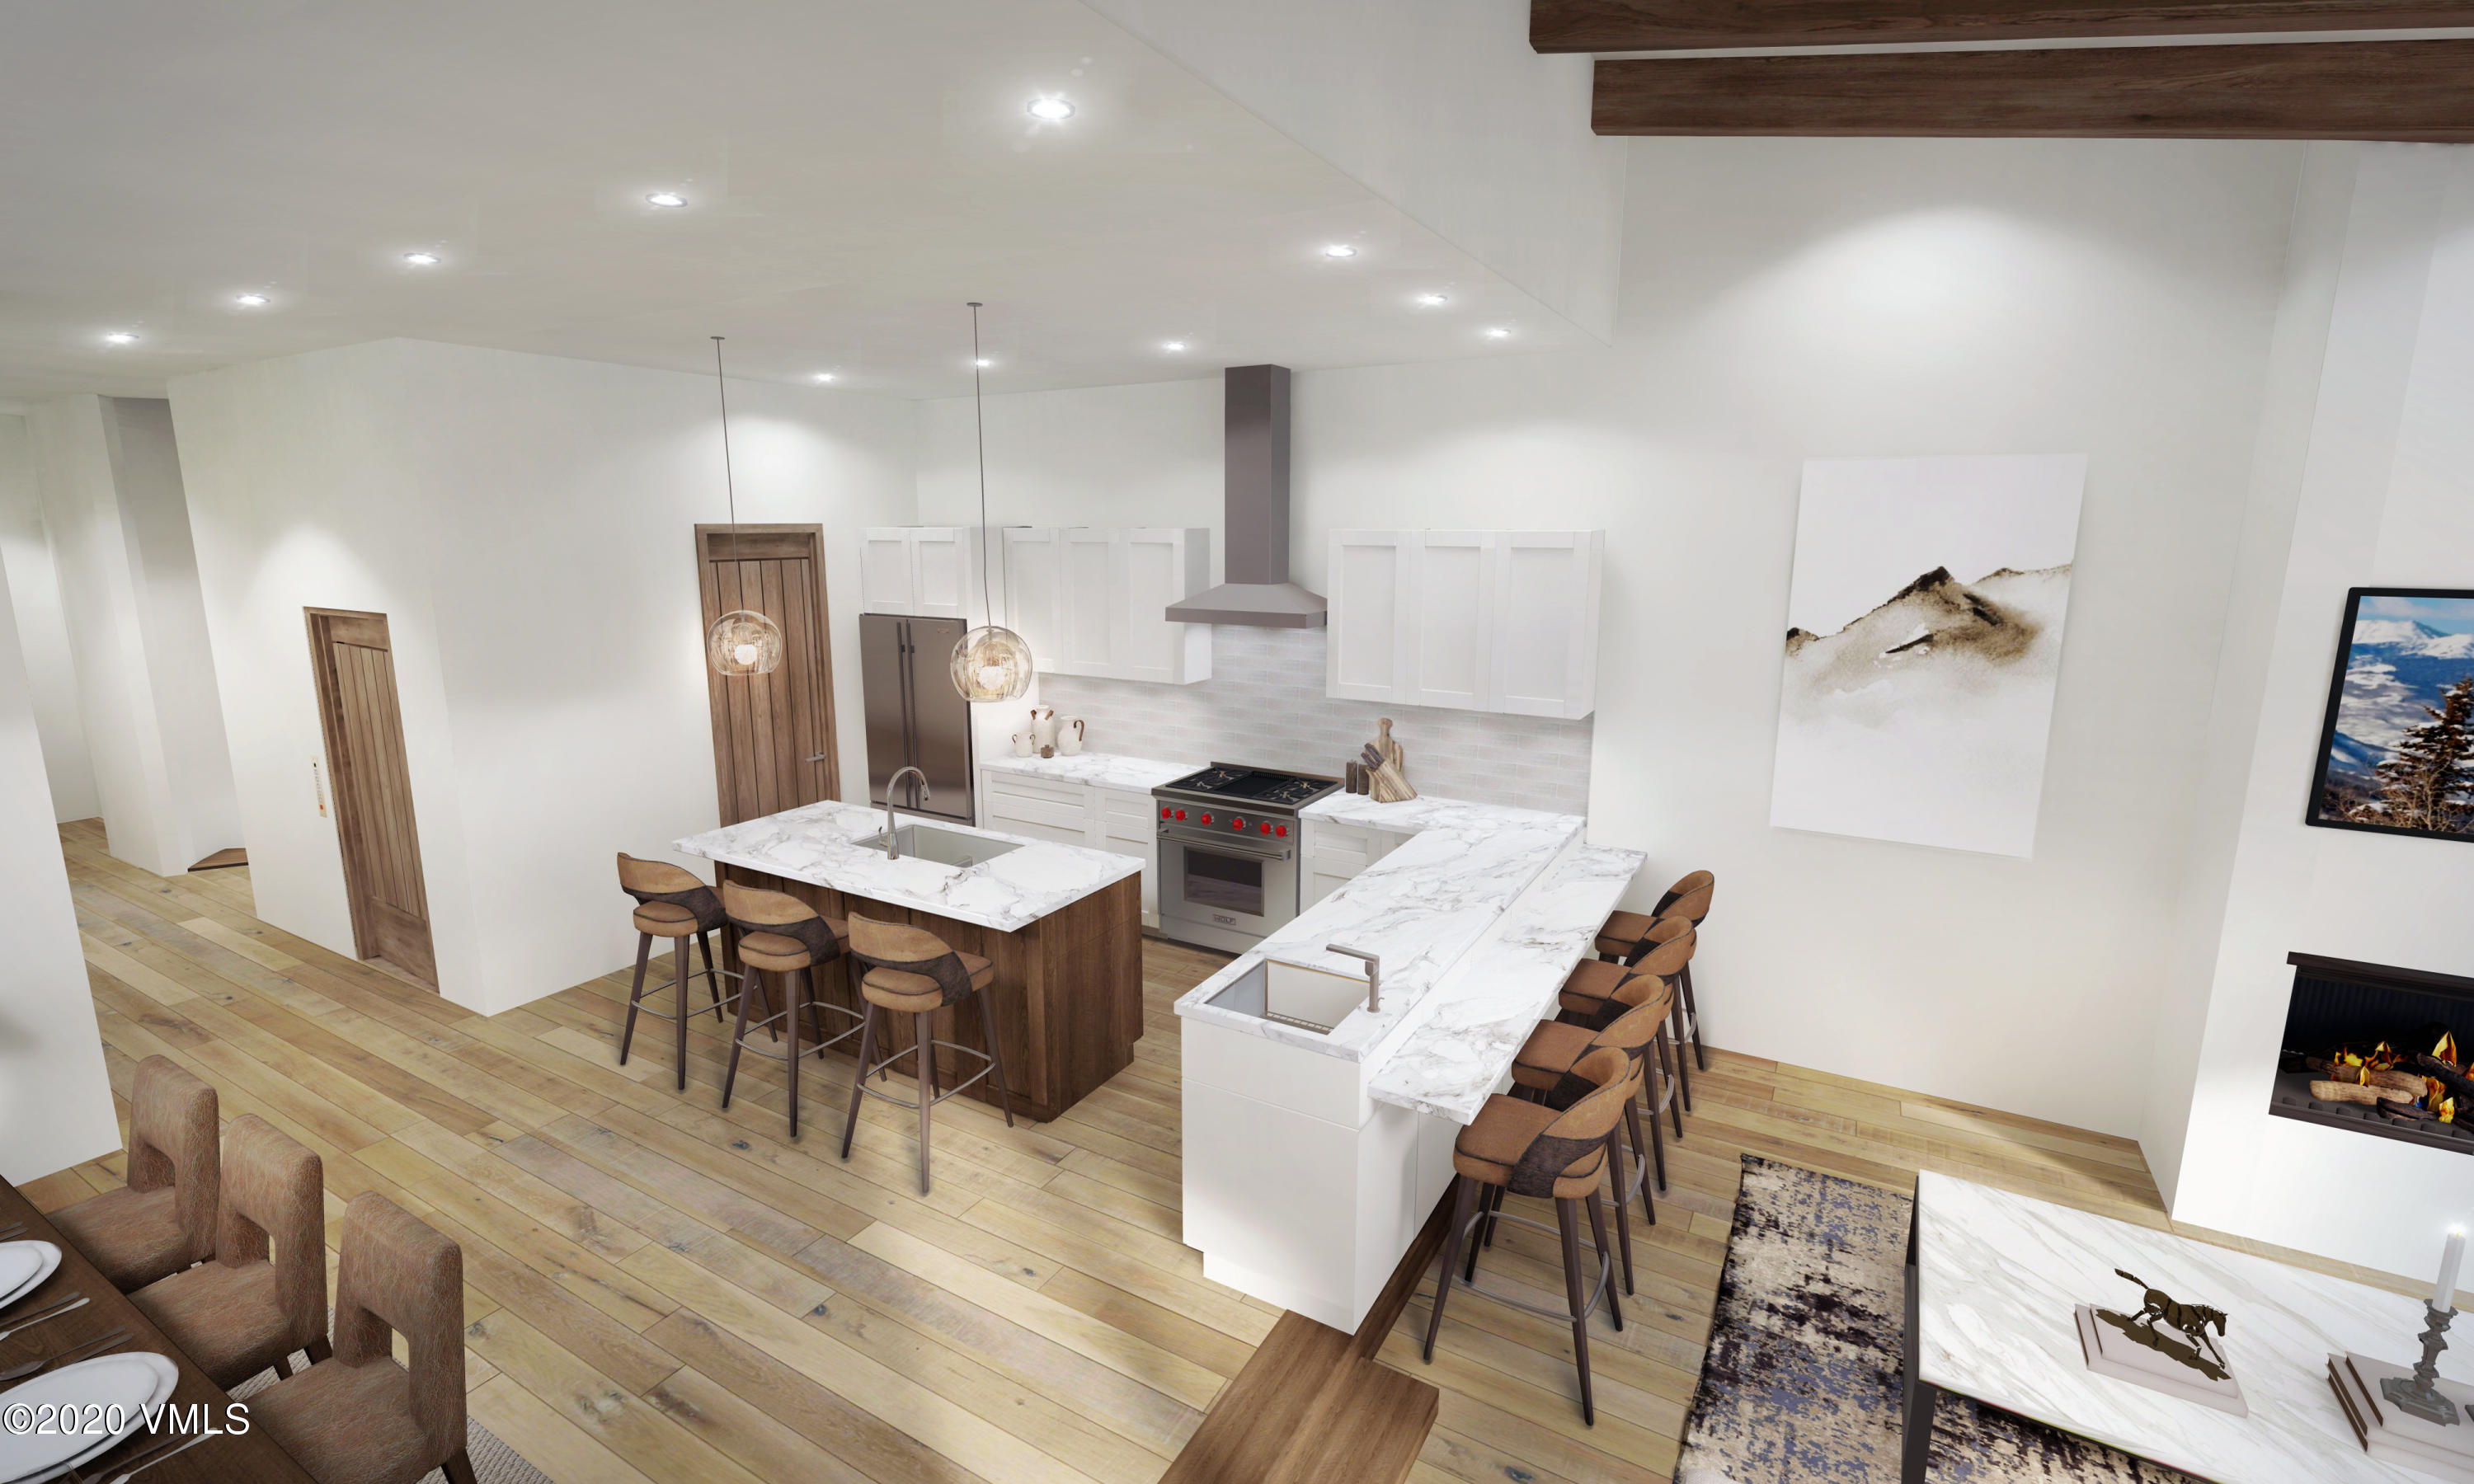 Proprty image for 4822 Meadow Lane Unit East